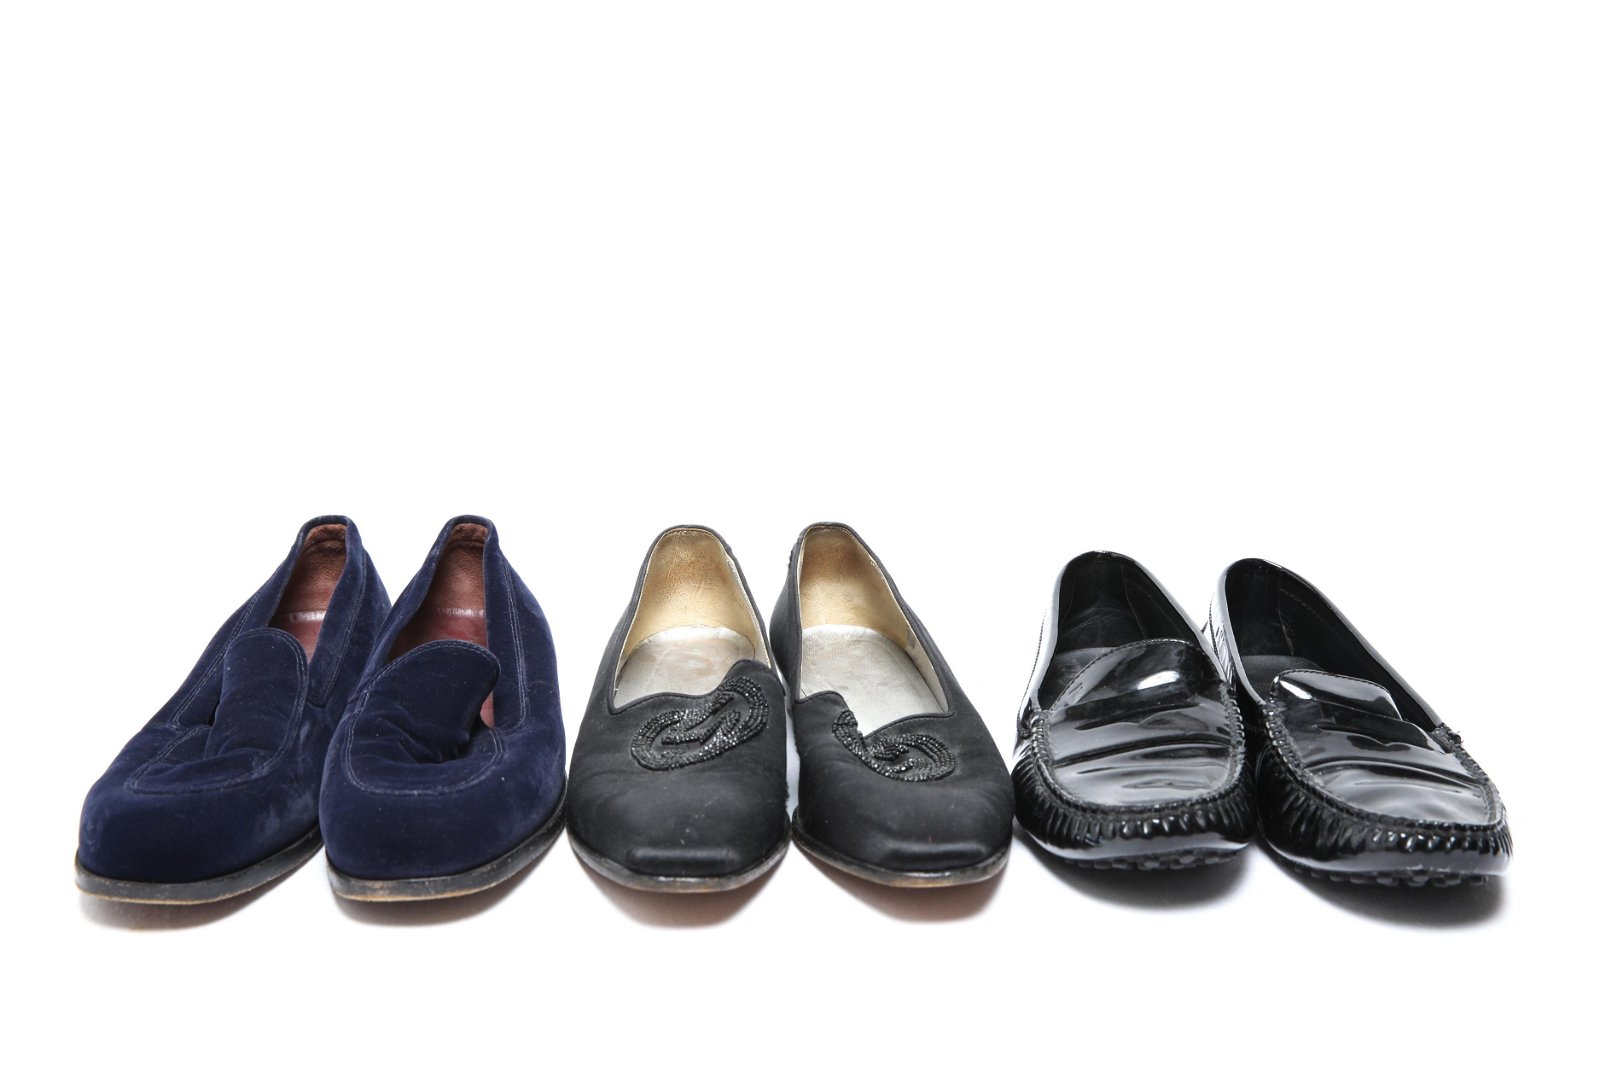 Ladies' Designer Loafers incl. Tod's & Gucci, 3 Pr